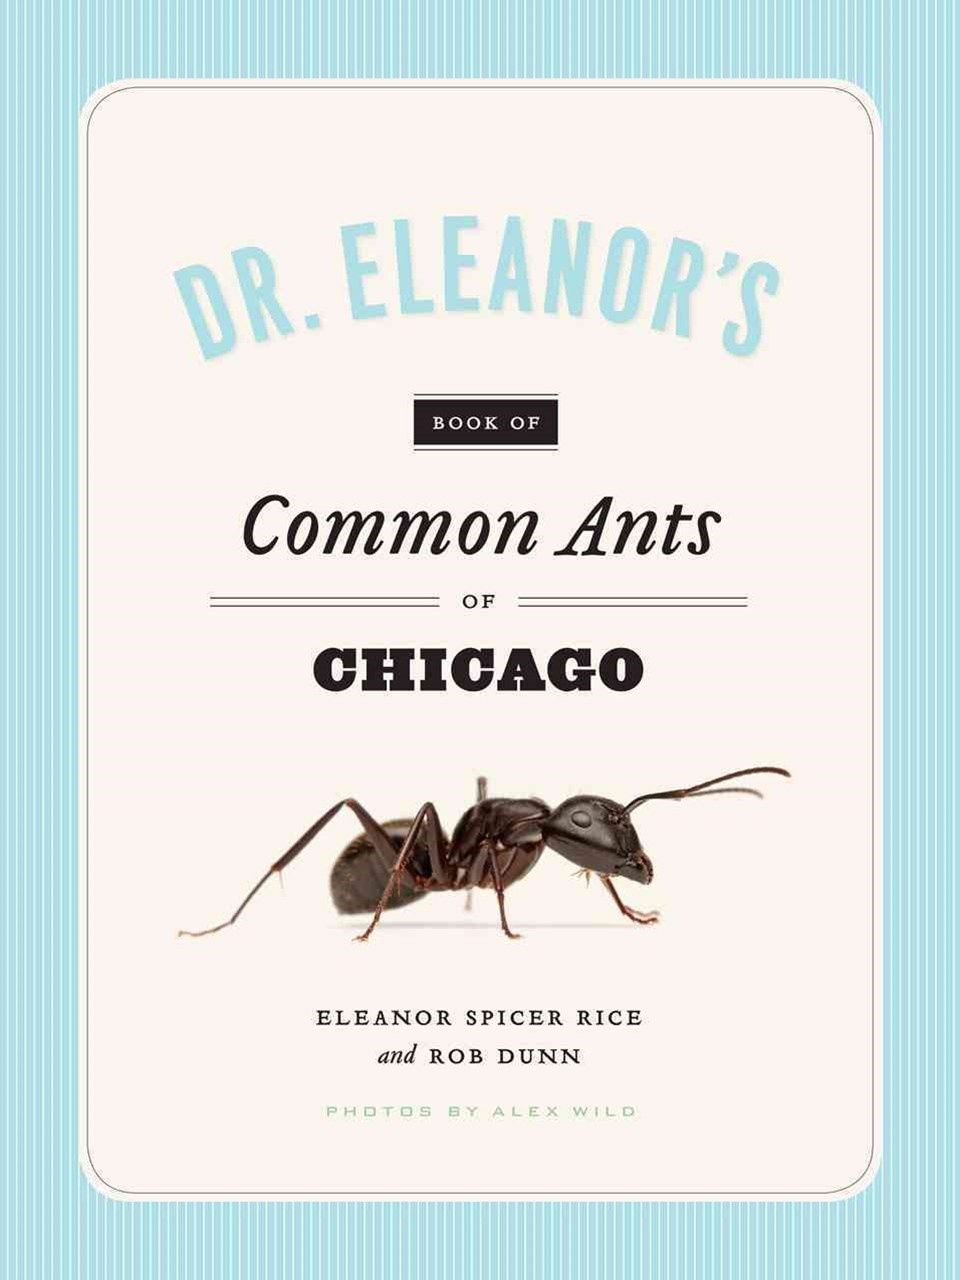 Dr. Eleanor's Book of Common Ants of Chicago